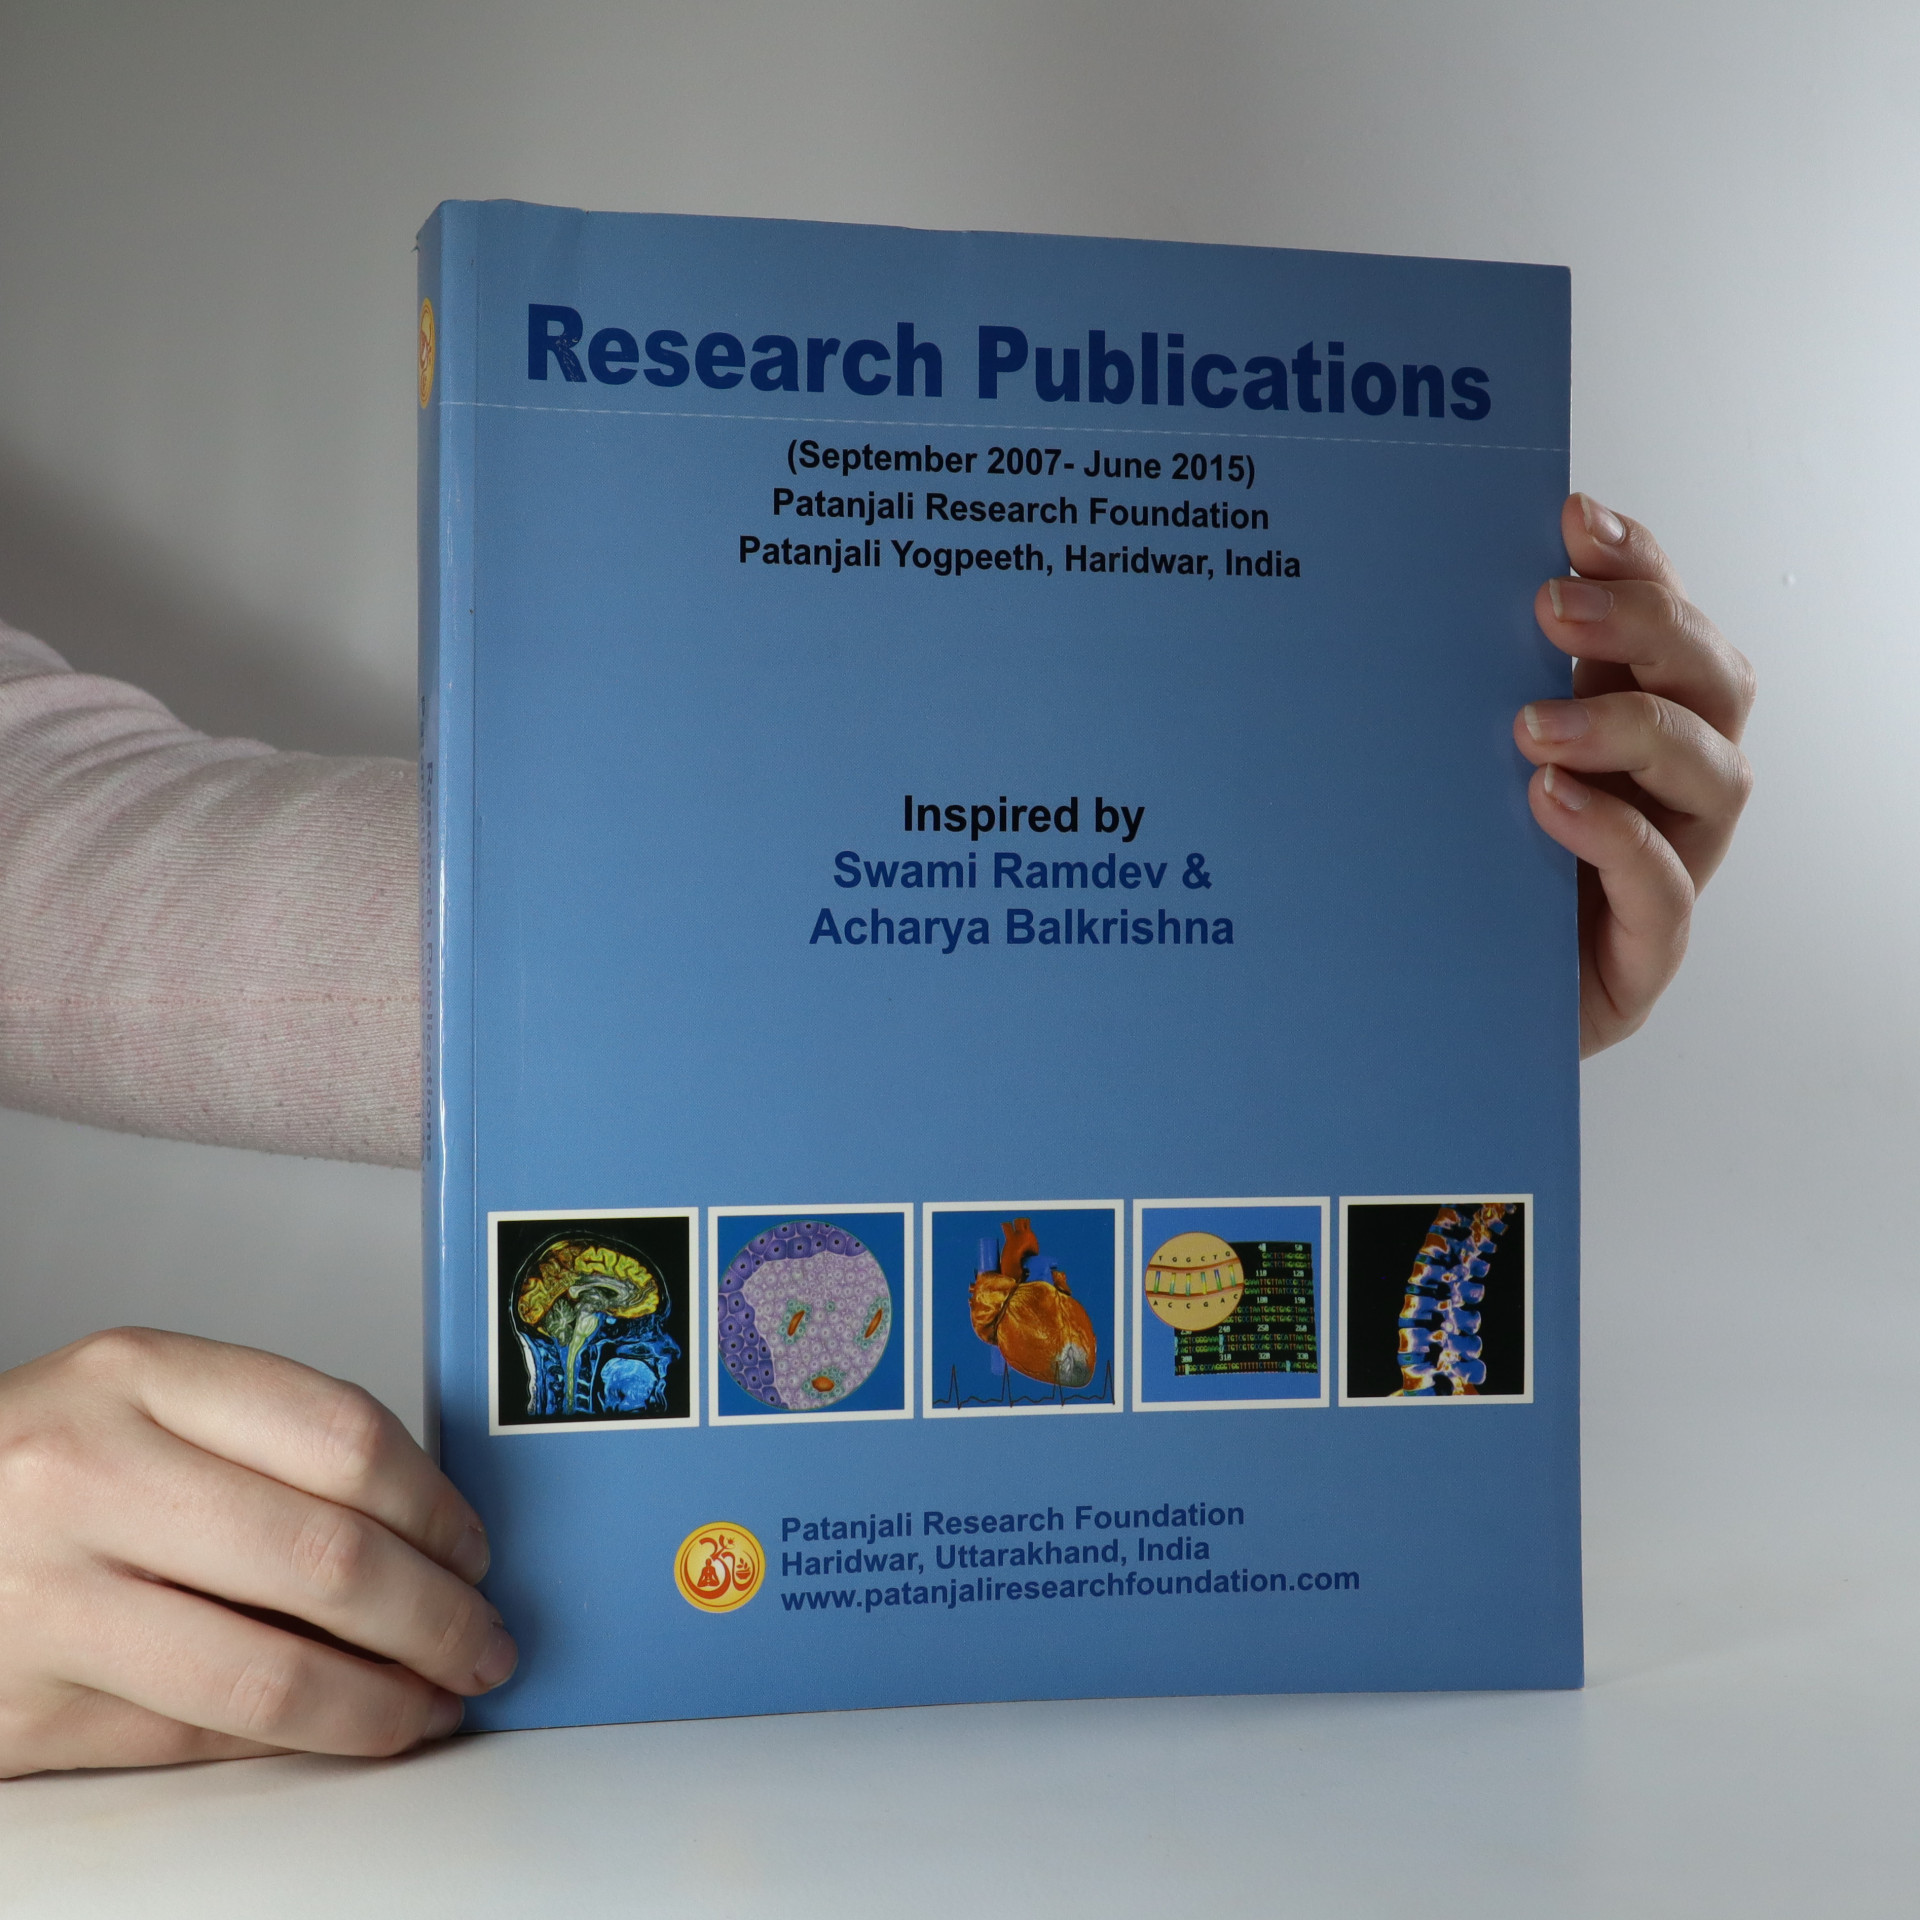 antikvární kniha Research Publications, 2007-2015